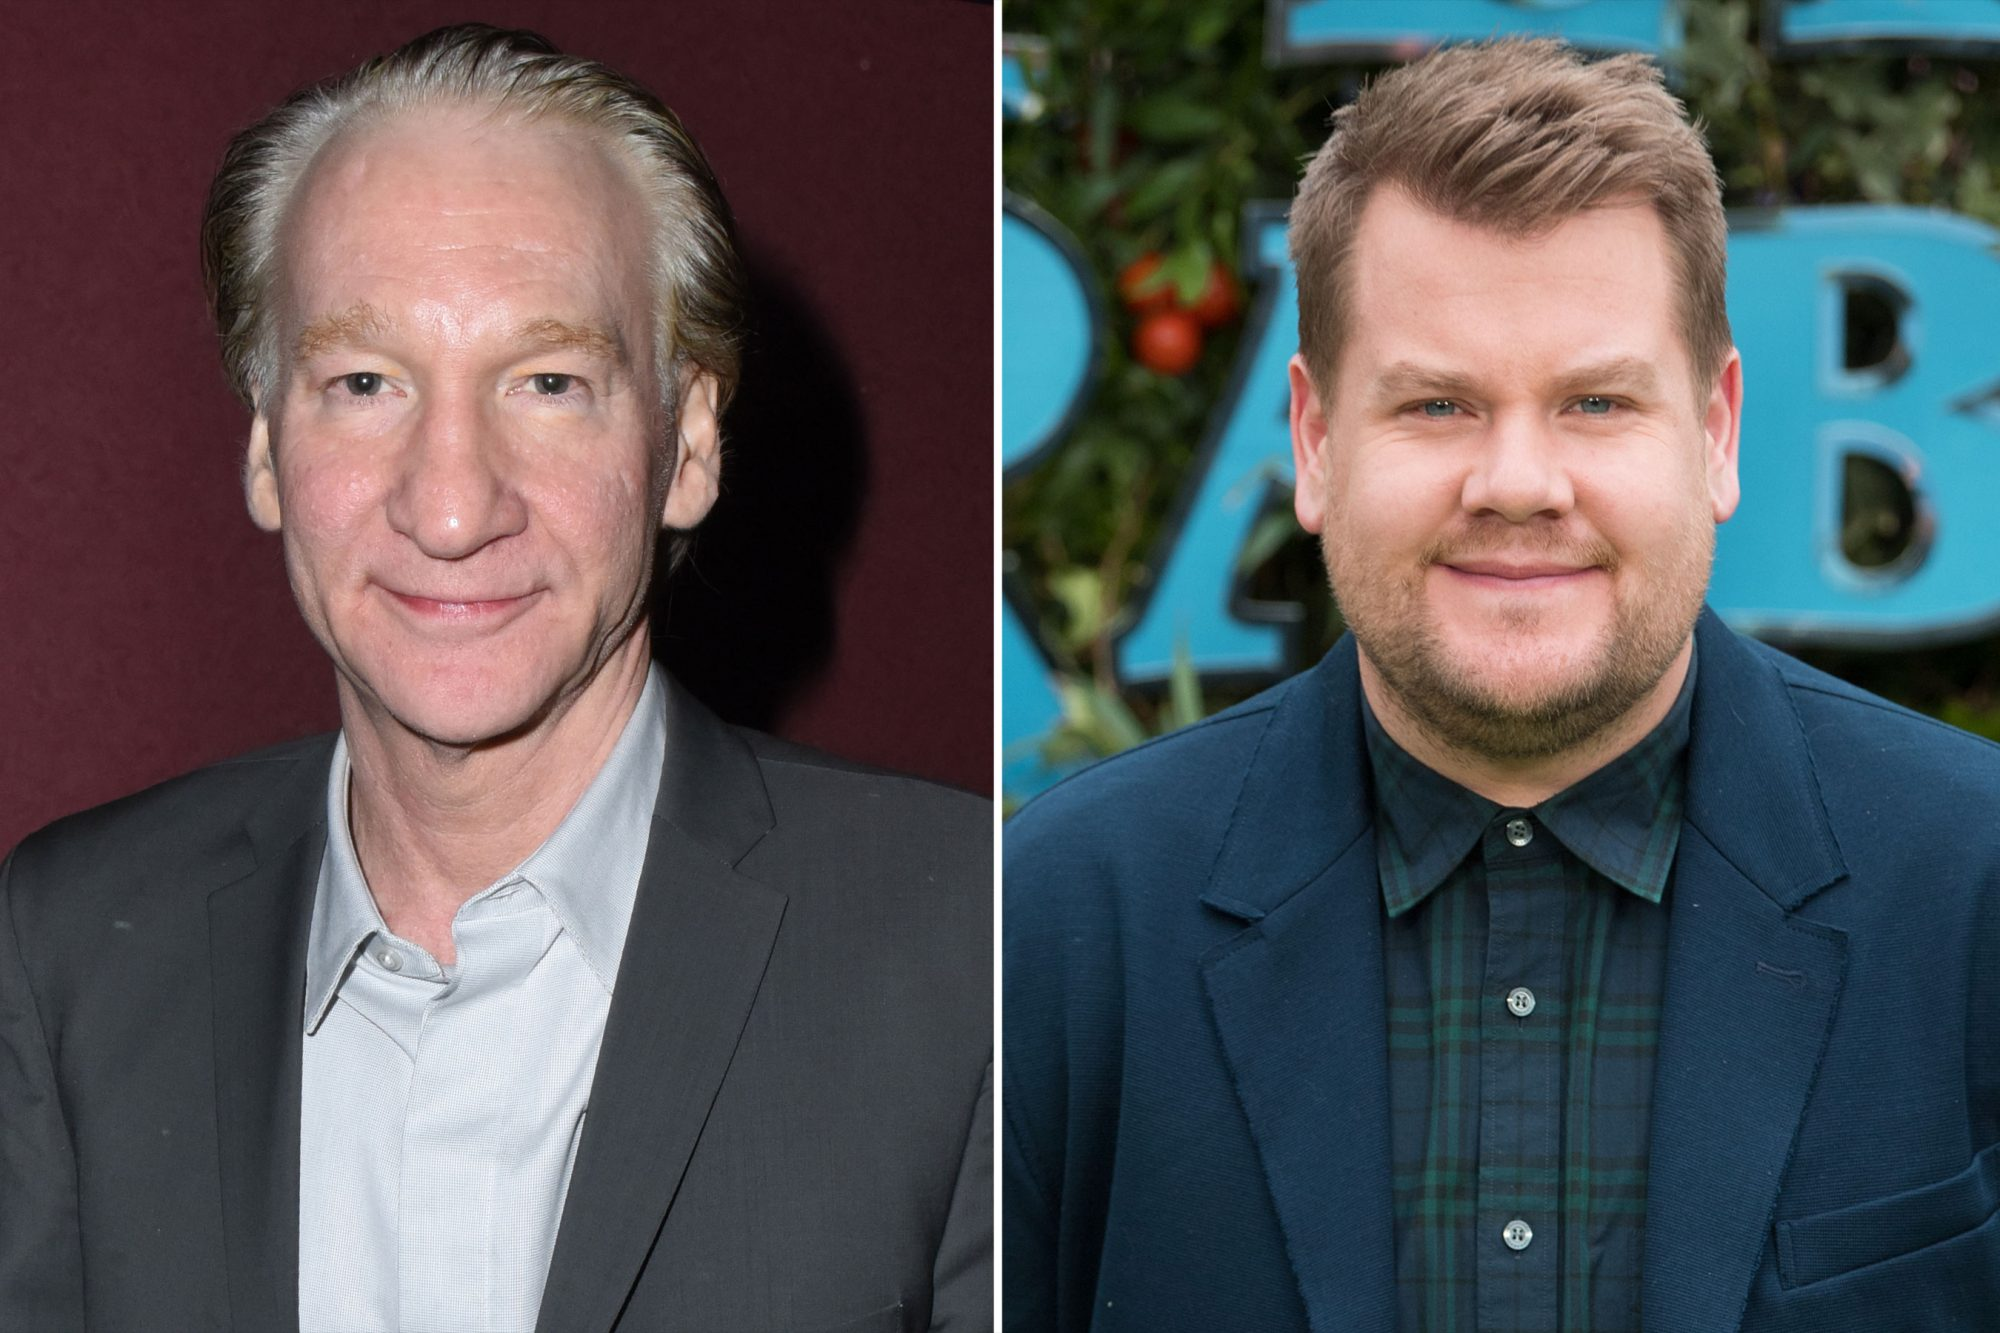 Bill Maher and James Corden